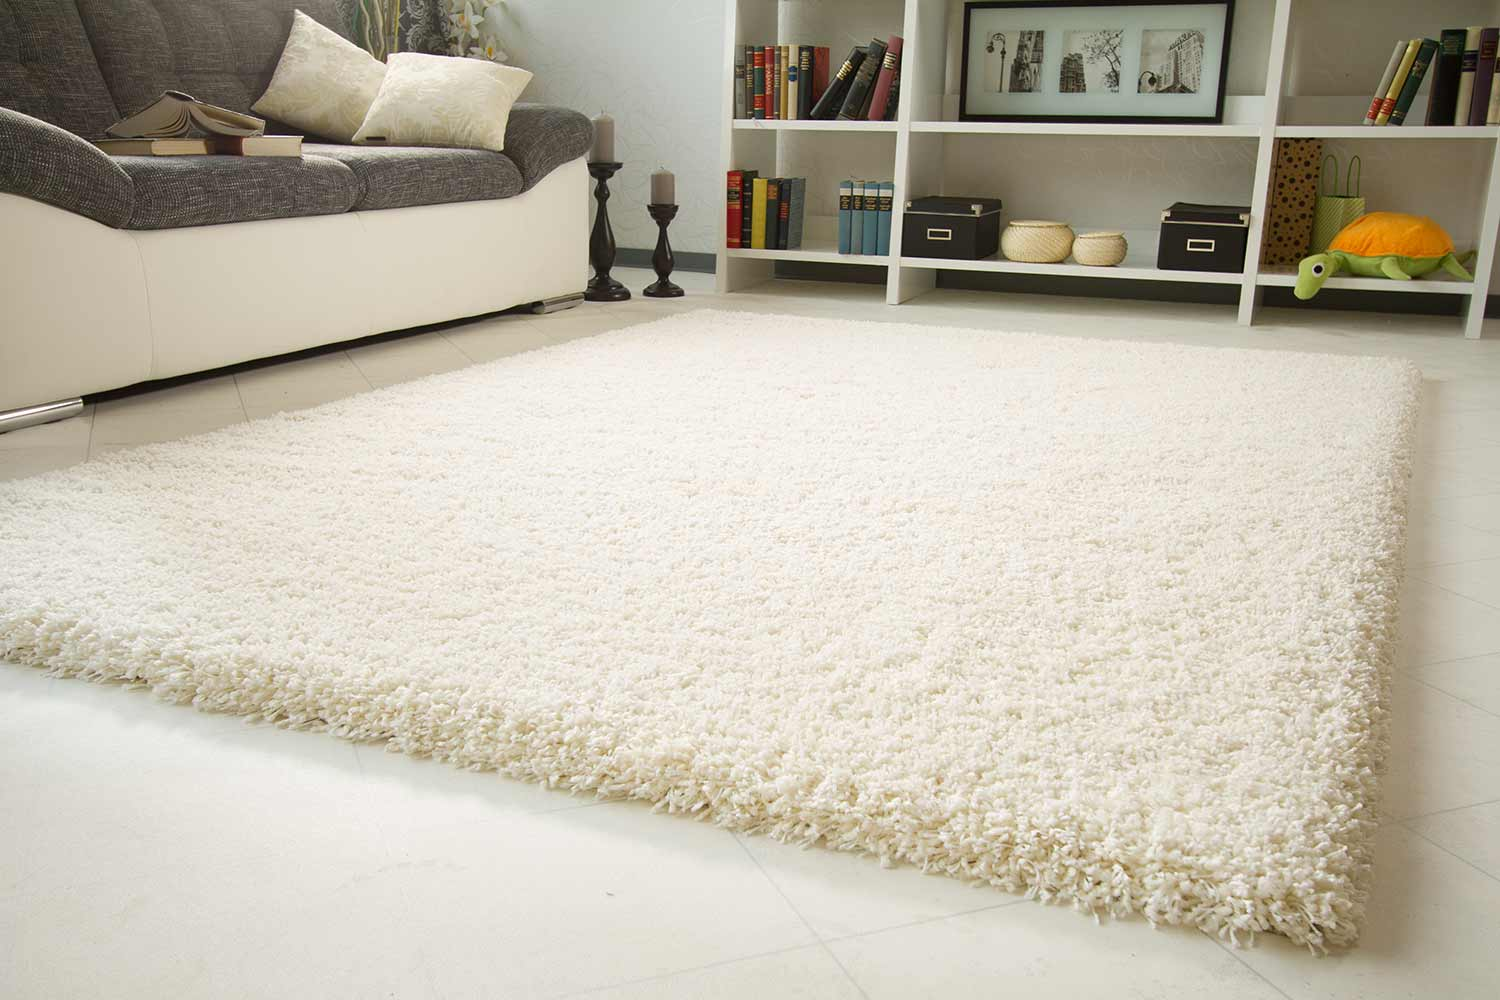 Teppich design weiss  Hochflor Teppich Tom Tailor - Soft | global-carpet